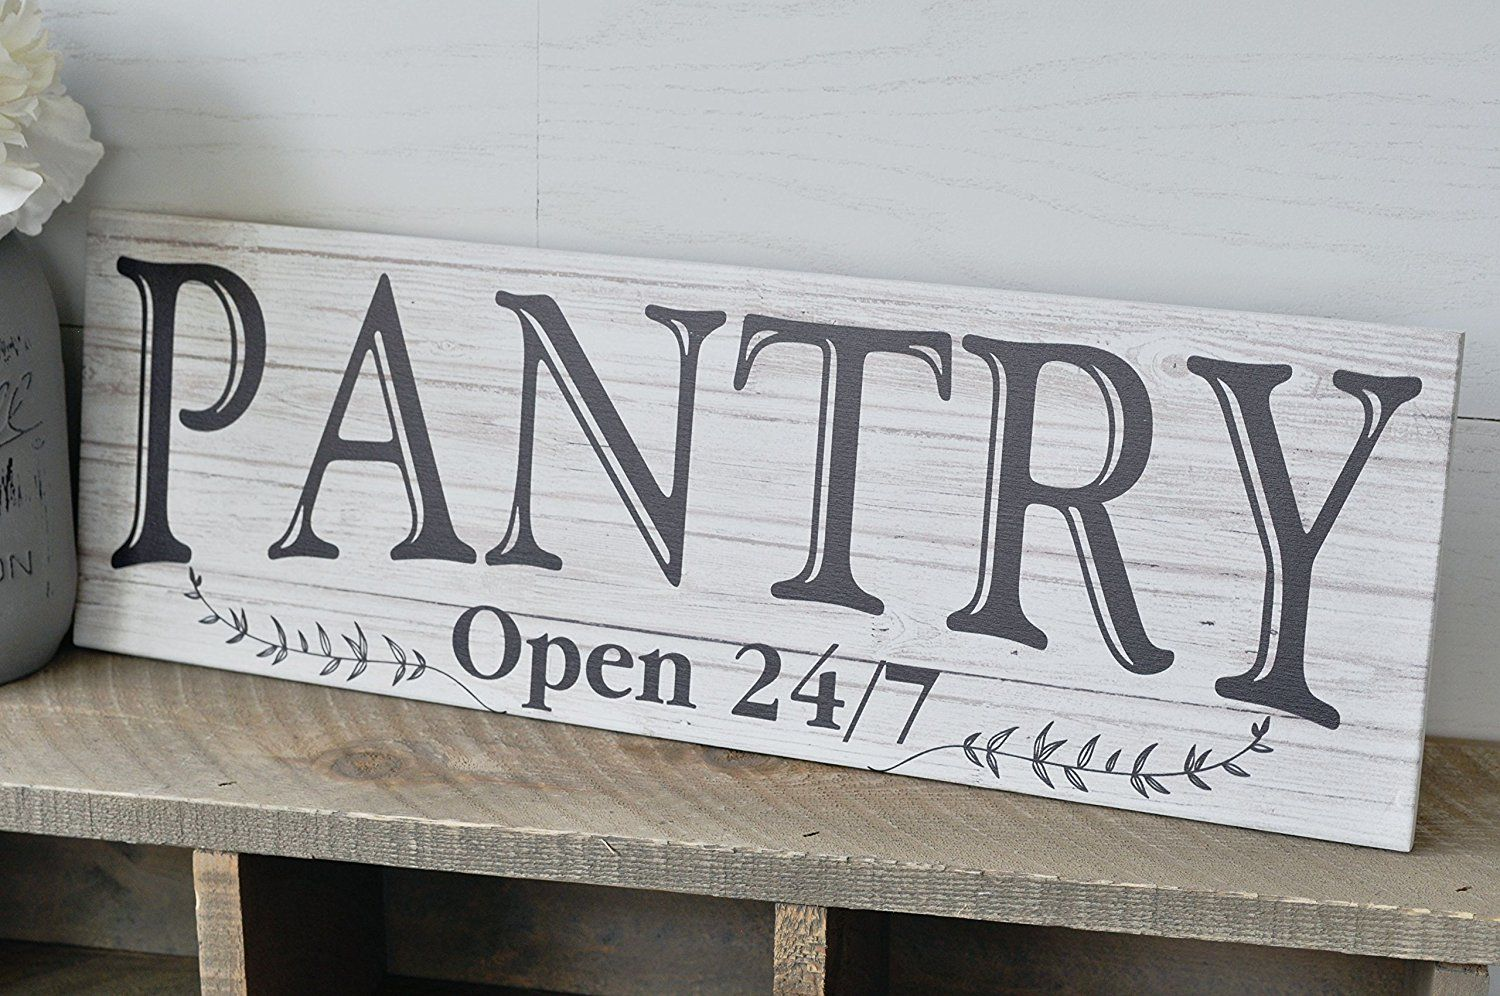 Pantry Open 24/7 White Rustic Wood Wall Sign 6x18, Rustic, Farmhouse on 10x14 kitchen design, 11x14 kitchen design, 10x12 kitchen design, 10x20 kitchen design, 9x12 kitchen design, 8x8 kitchen design, 10x15 kitchen design, 8x14 kitchen design, 12x12 kitchen design, 8x10 kitchen design, 6x6 kitchen design, 12x18 kitchen design,